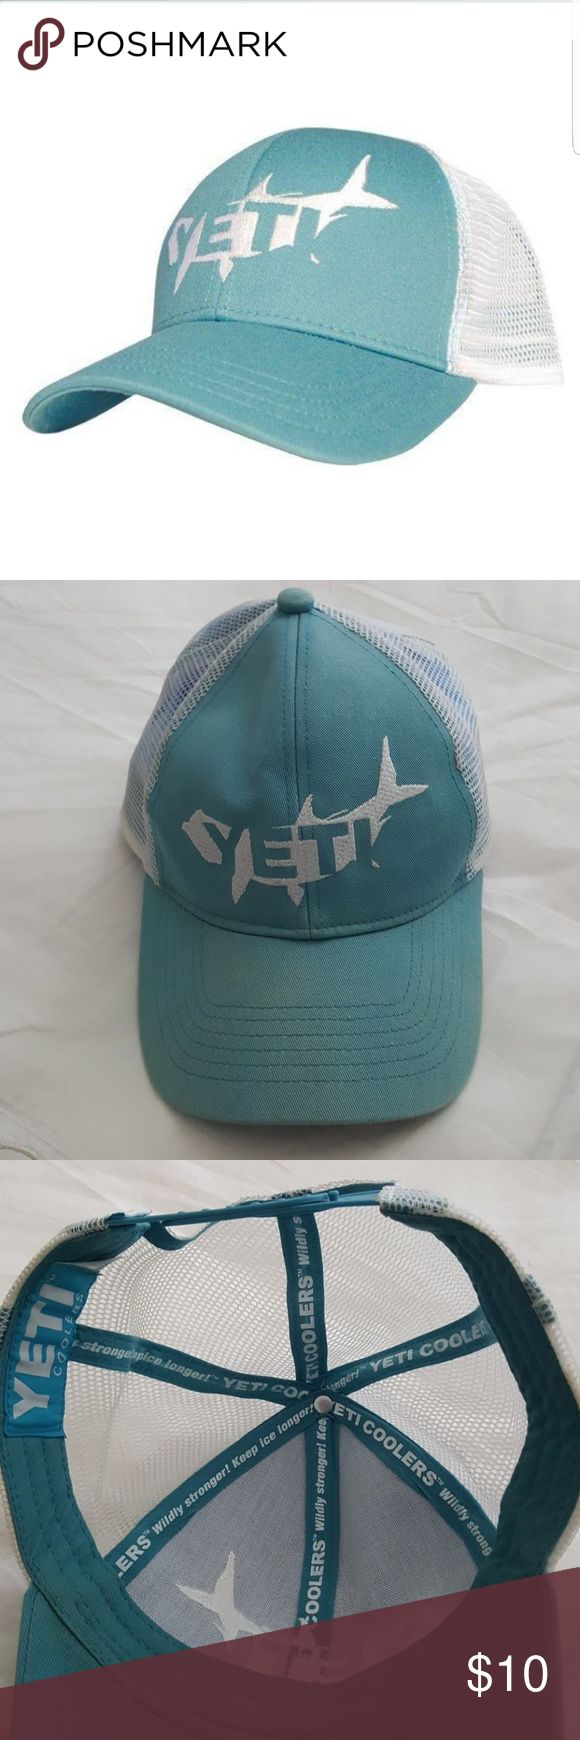 Yeti Tarpon Trucker snapback hat Yeti hat in light blue with snapback. Hat is used with slight color fade. Price reflects. Yeti Accessories Hats